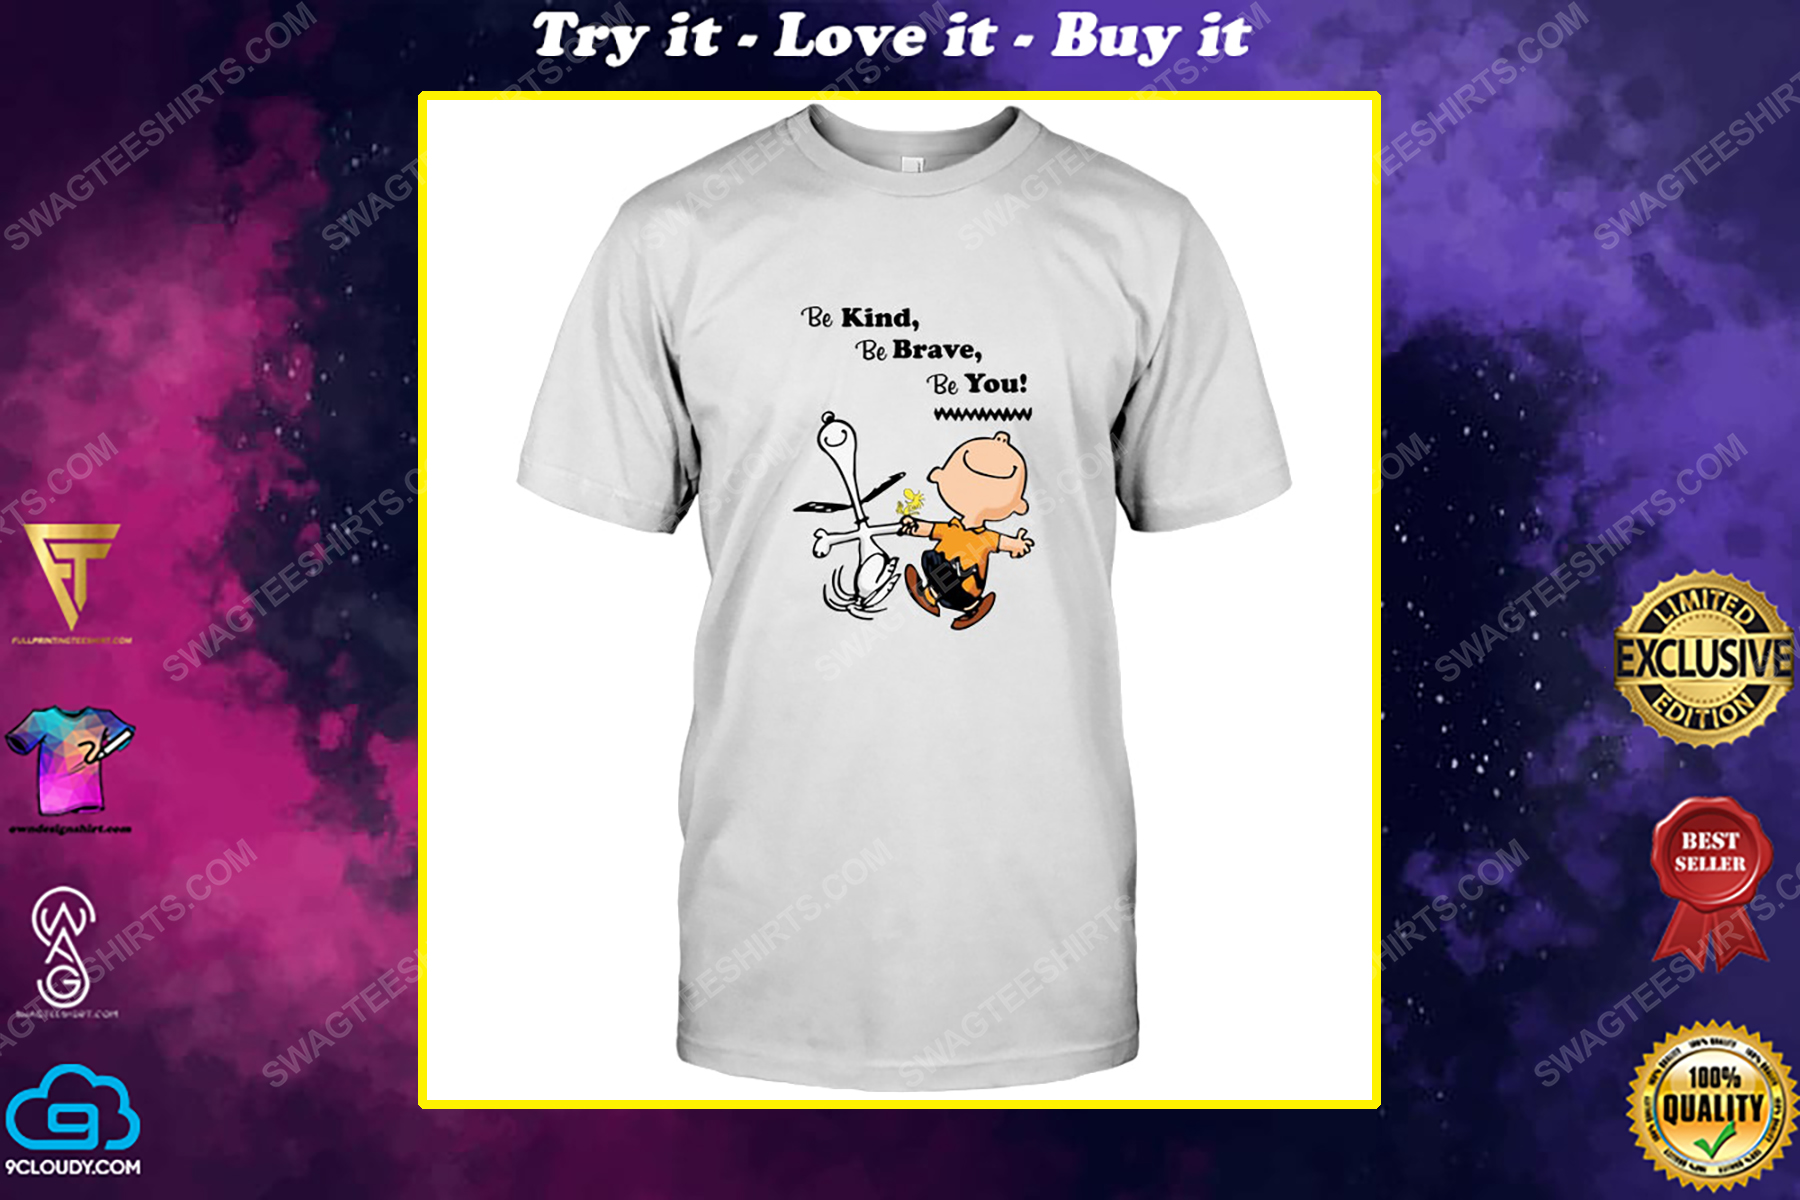 Charlie brown and snoopy be kind be brave be you shirt